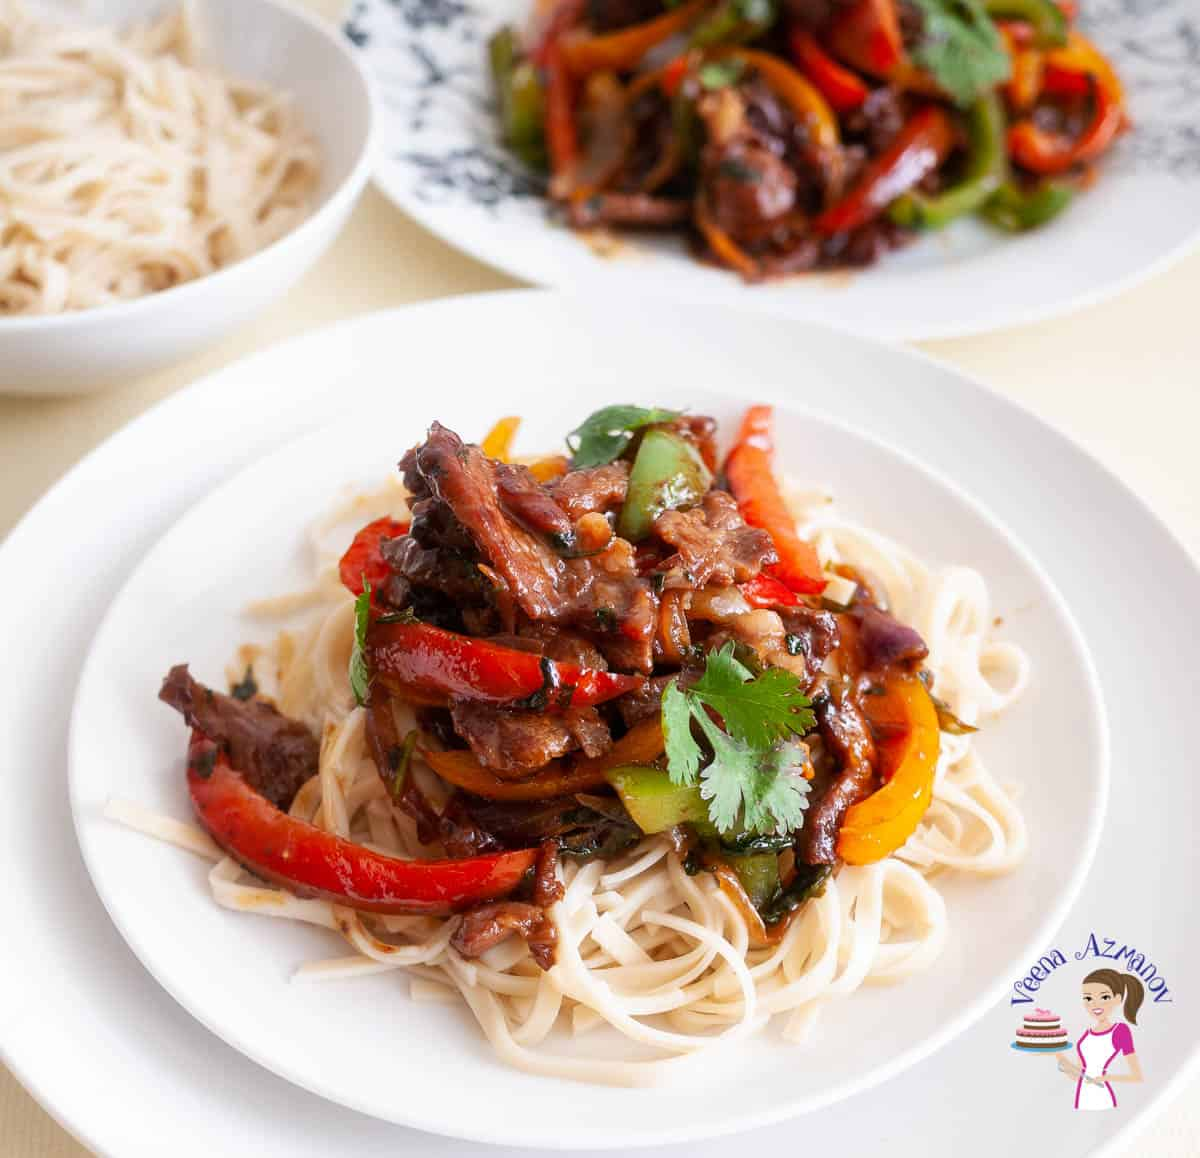 White plate with stirfry over noodles